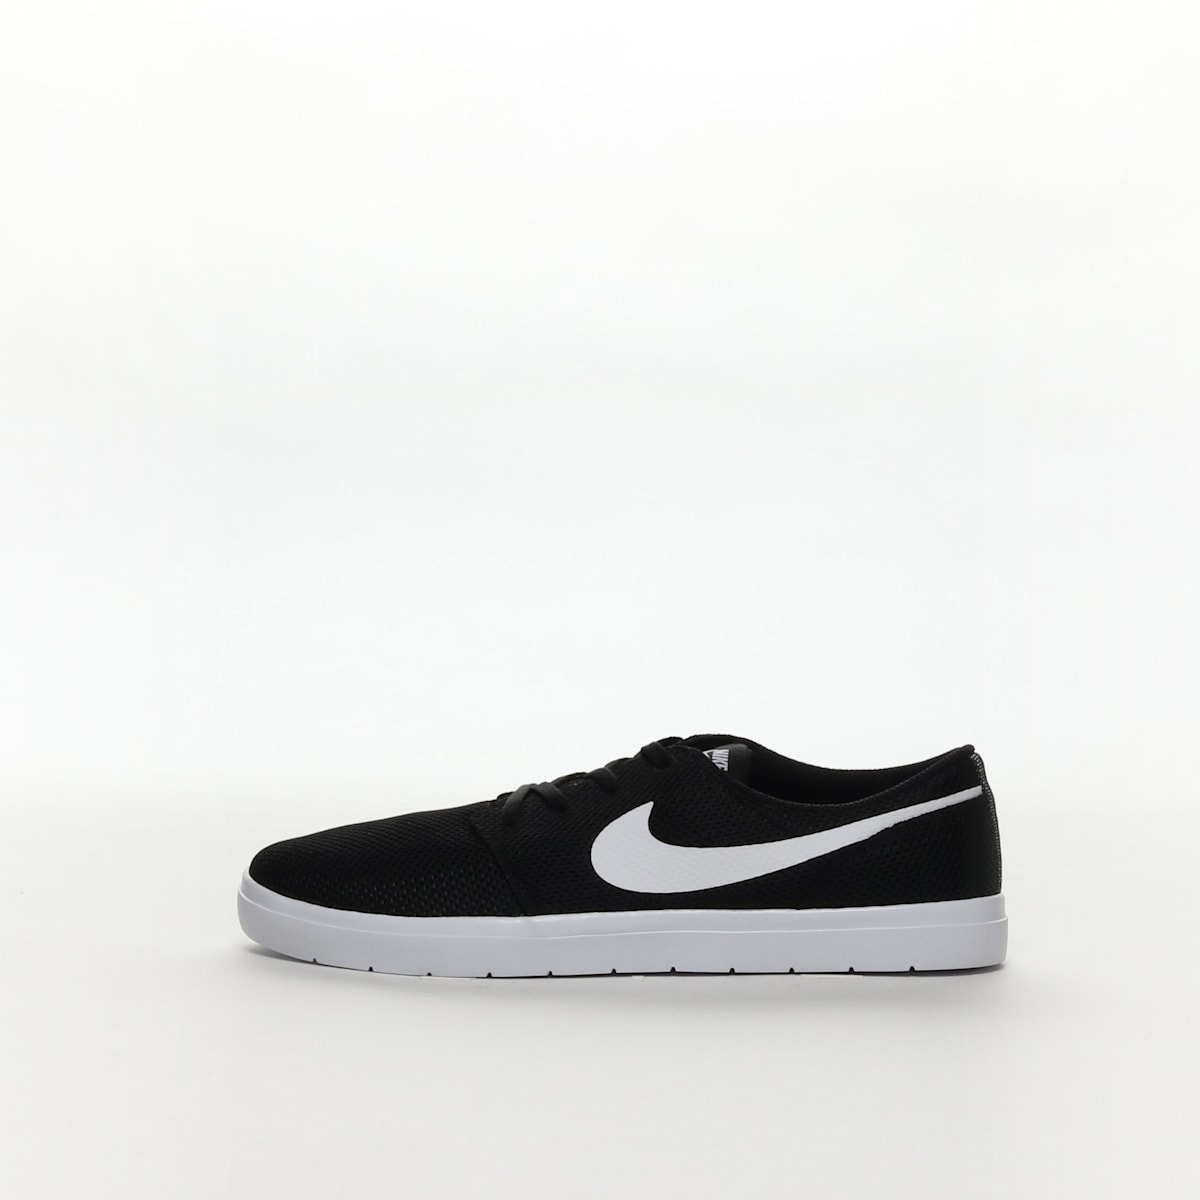 official photos c4c13 c6333 NIKE SB PORTMORE II ULTRALIGHT - BLACK WHITE – Resku nike sb portmore